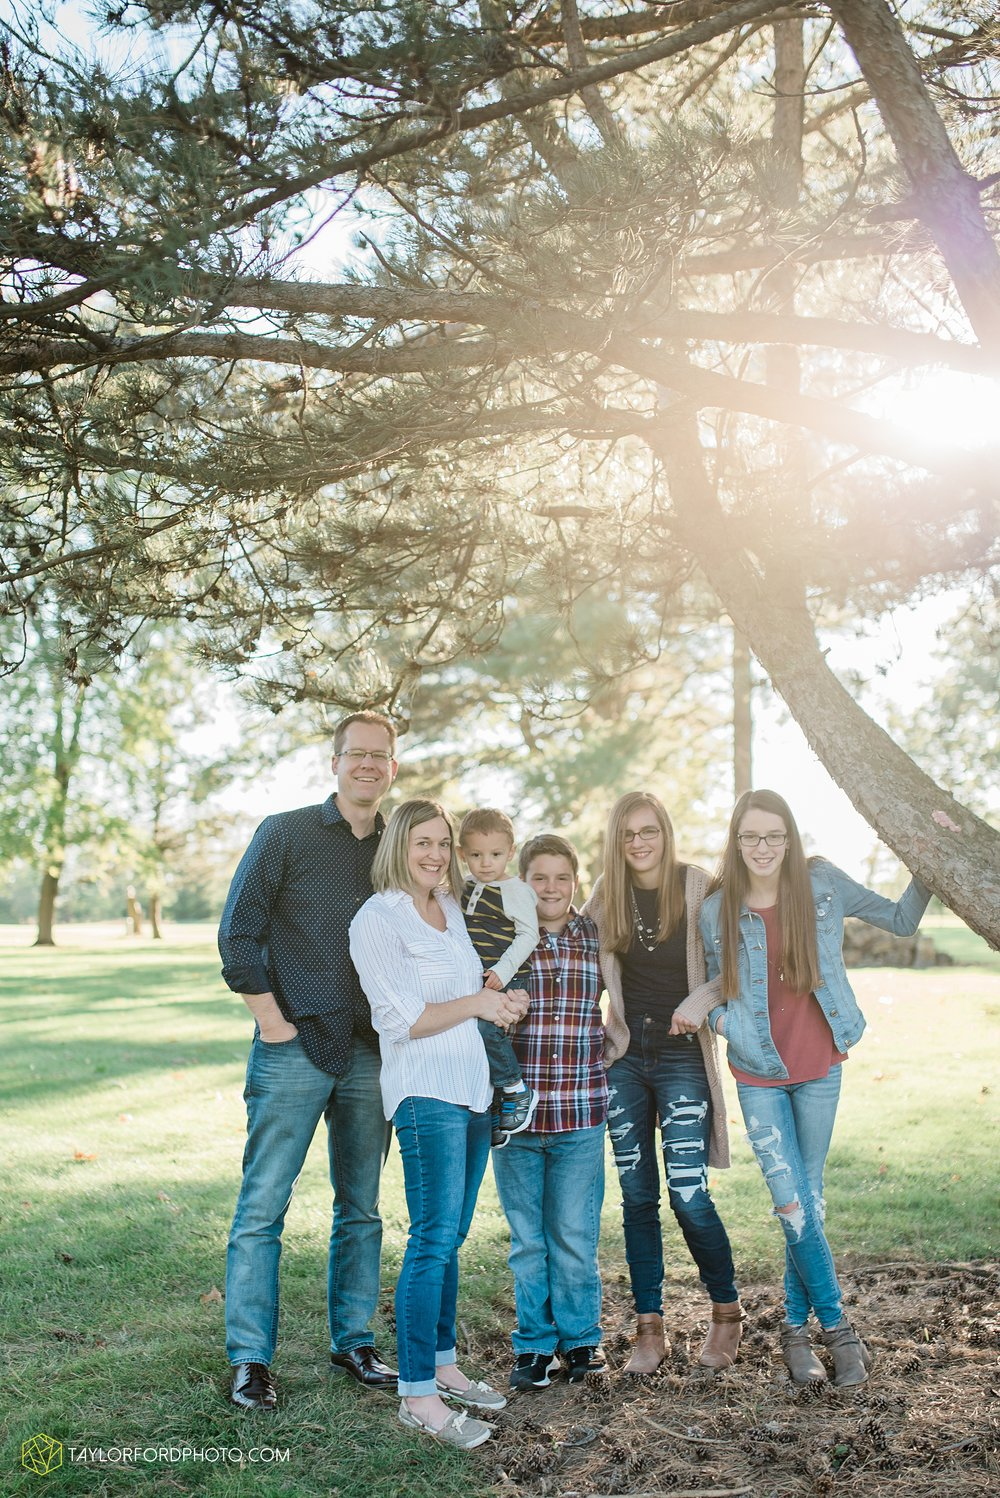 northwest-van-wert-ohio-backyard-at-home-outdoor-natural-light-stollerfamily-photographer-taylor-ford-photography_1239.jpg